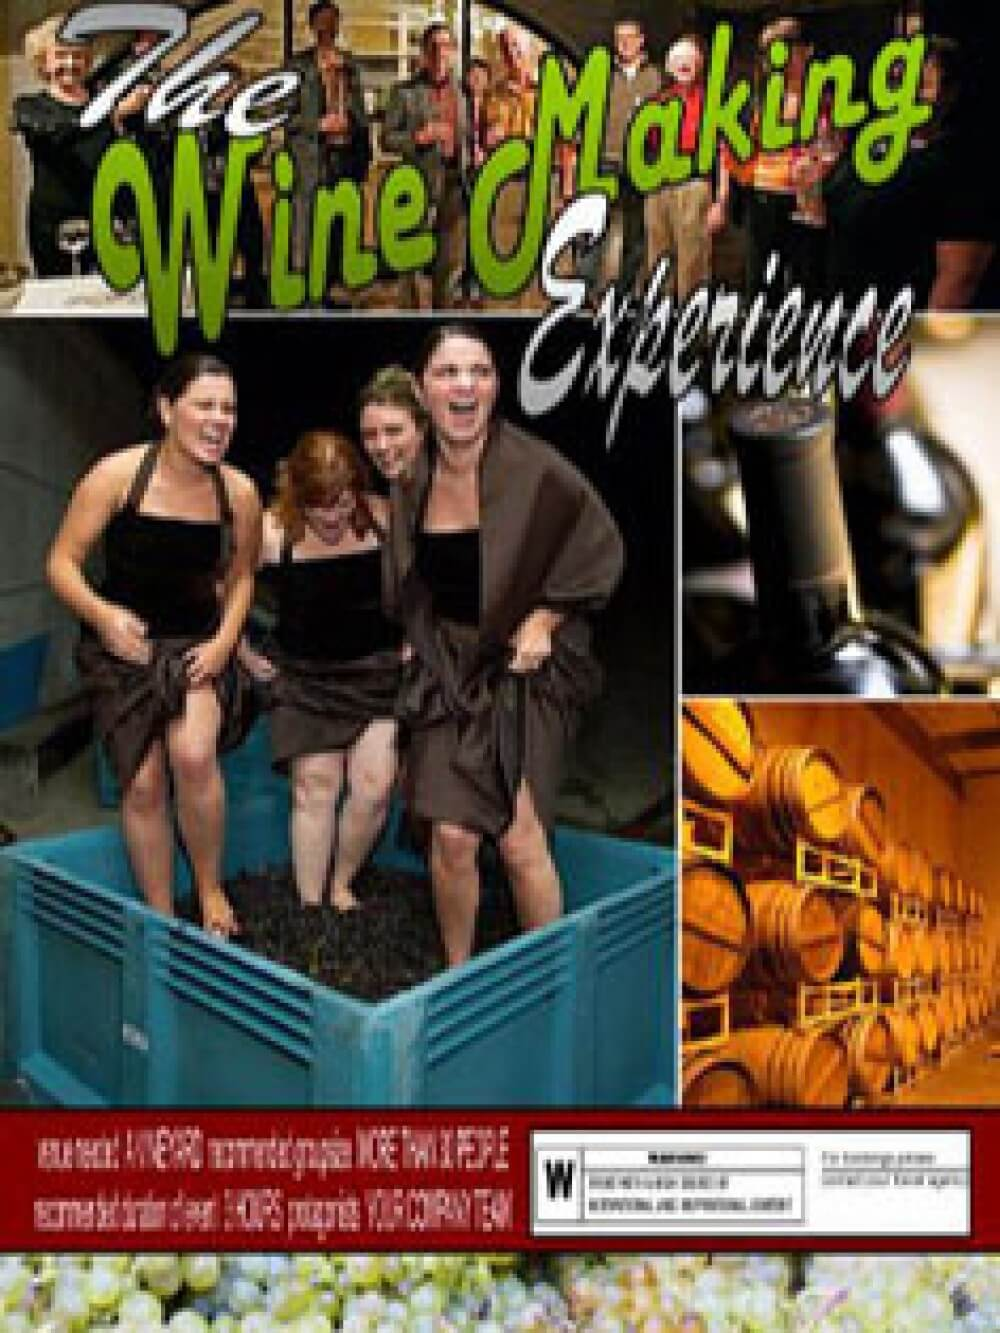 wine_making_experience_vertical_web